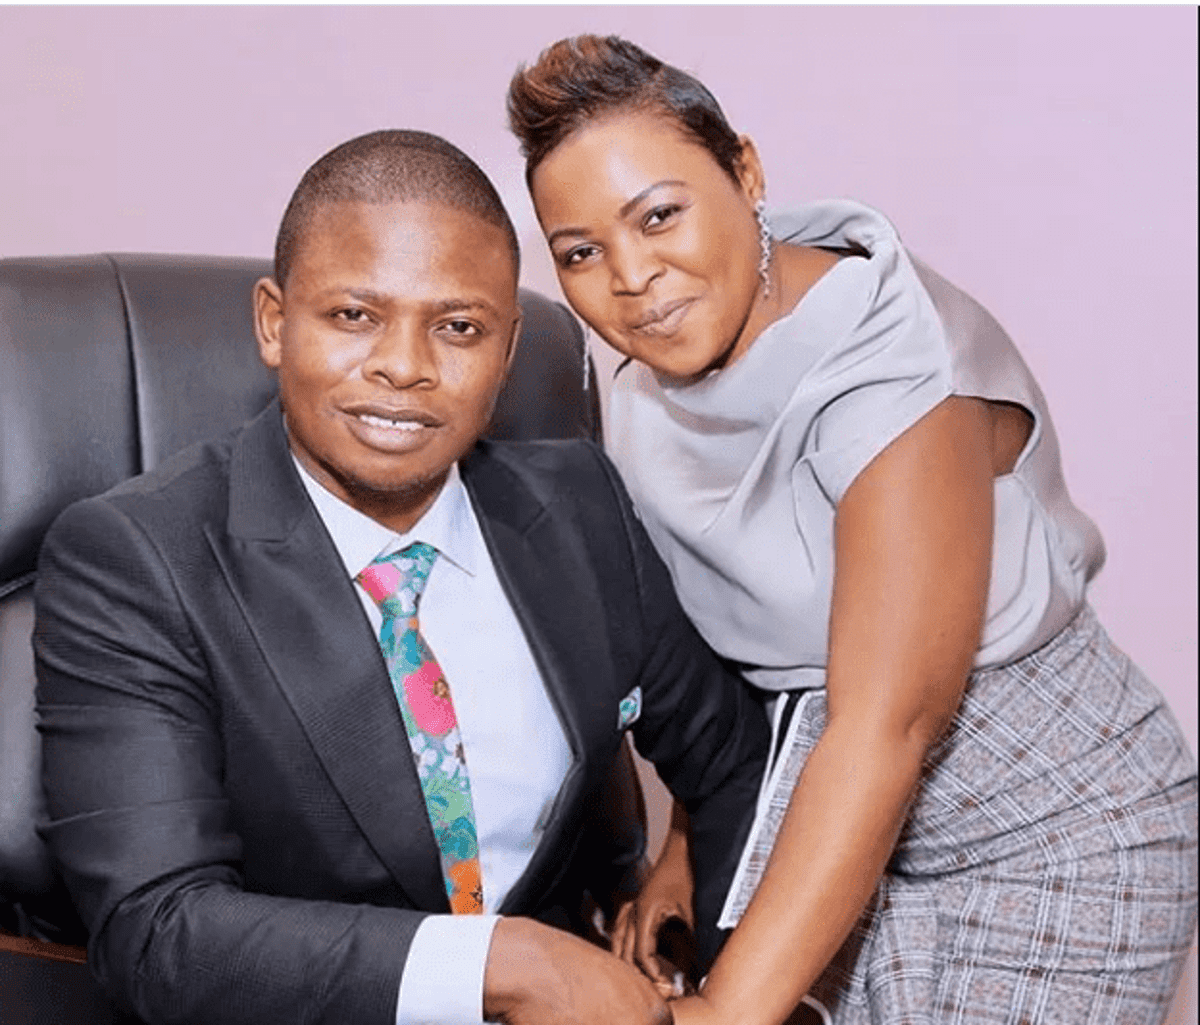 Fugitive Prophet Shepherd Bushiri speaks about his escape from South Africa where he is facing criminal charges